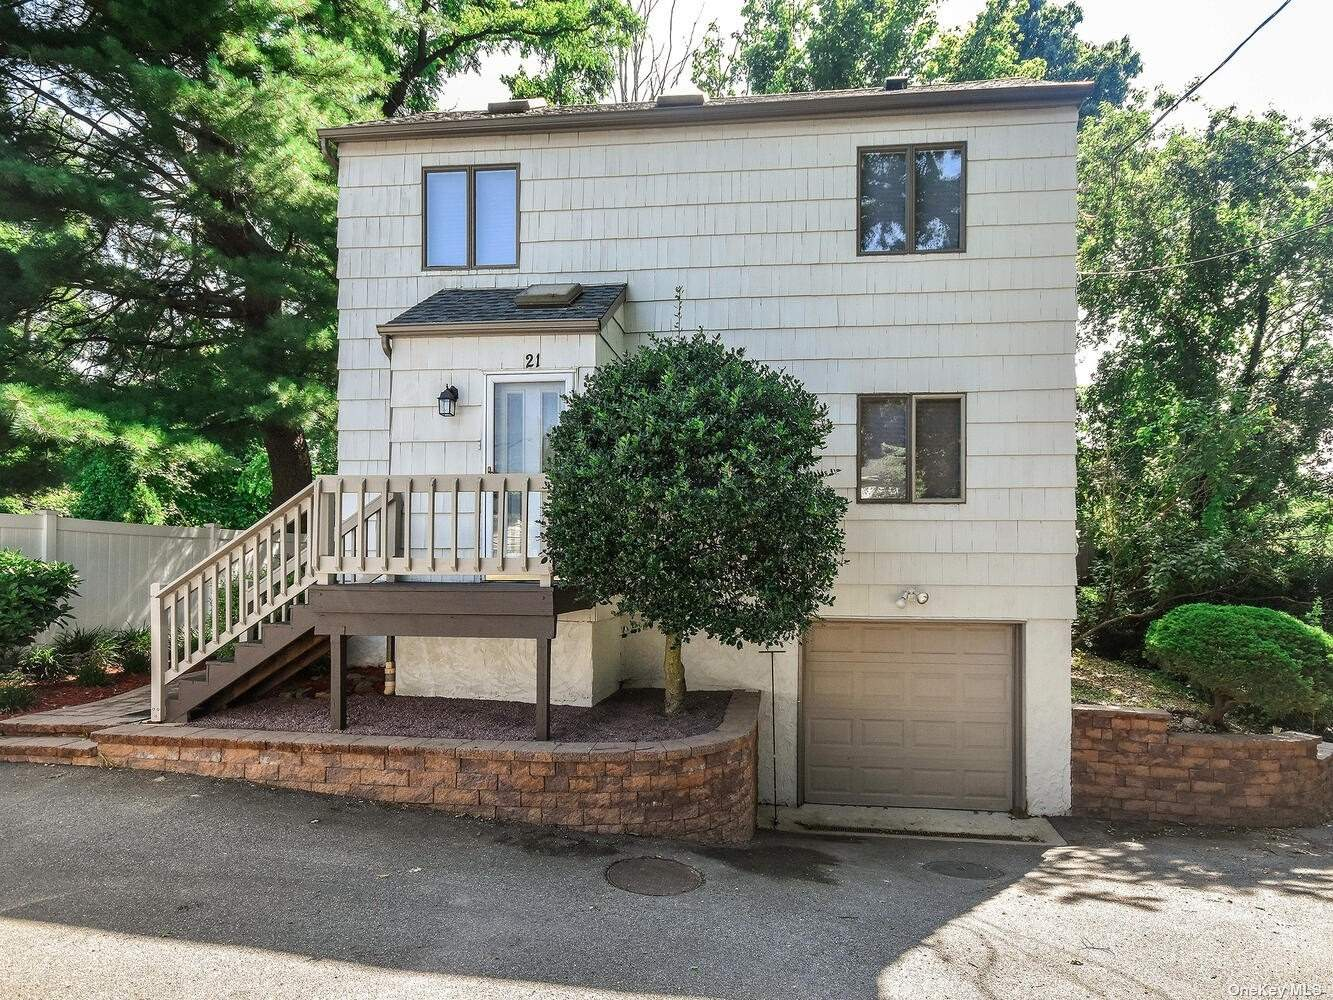 Completely renovated 2 Story house, with 3 bedrooms and 3 full bathrooms. Open floor plan, with Vaulted ceilings and skylights, L-Shaped Living Room-Dinning Room with Fireplace and sliding doors to a huge deck.